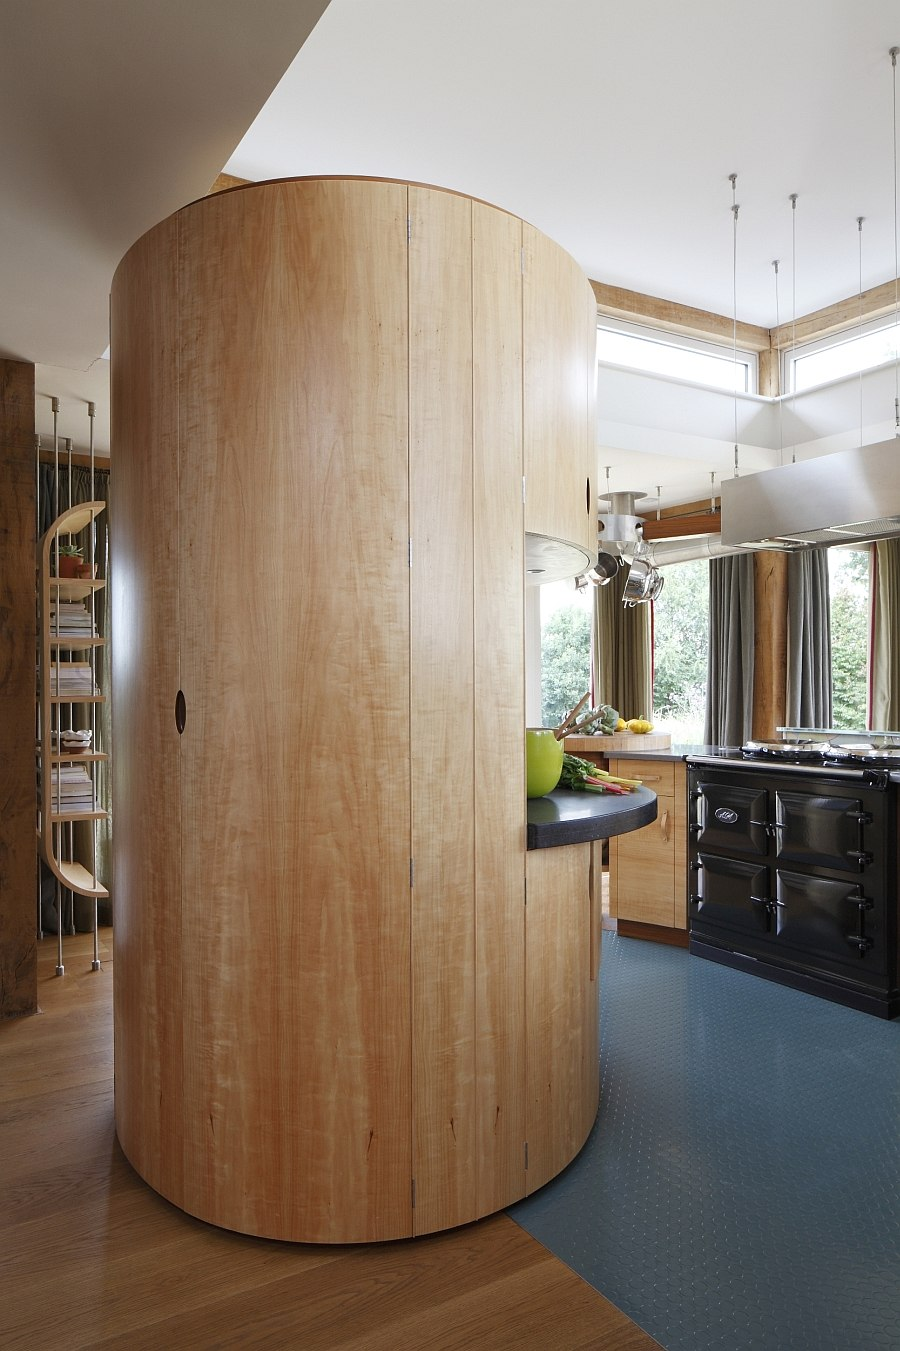 Gorgeous pantry cupboard with walk-in pantry and a worksurface